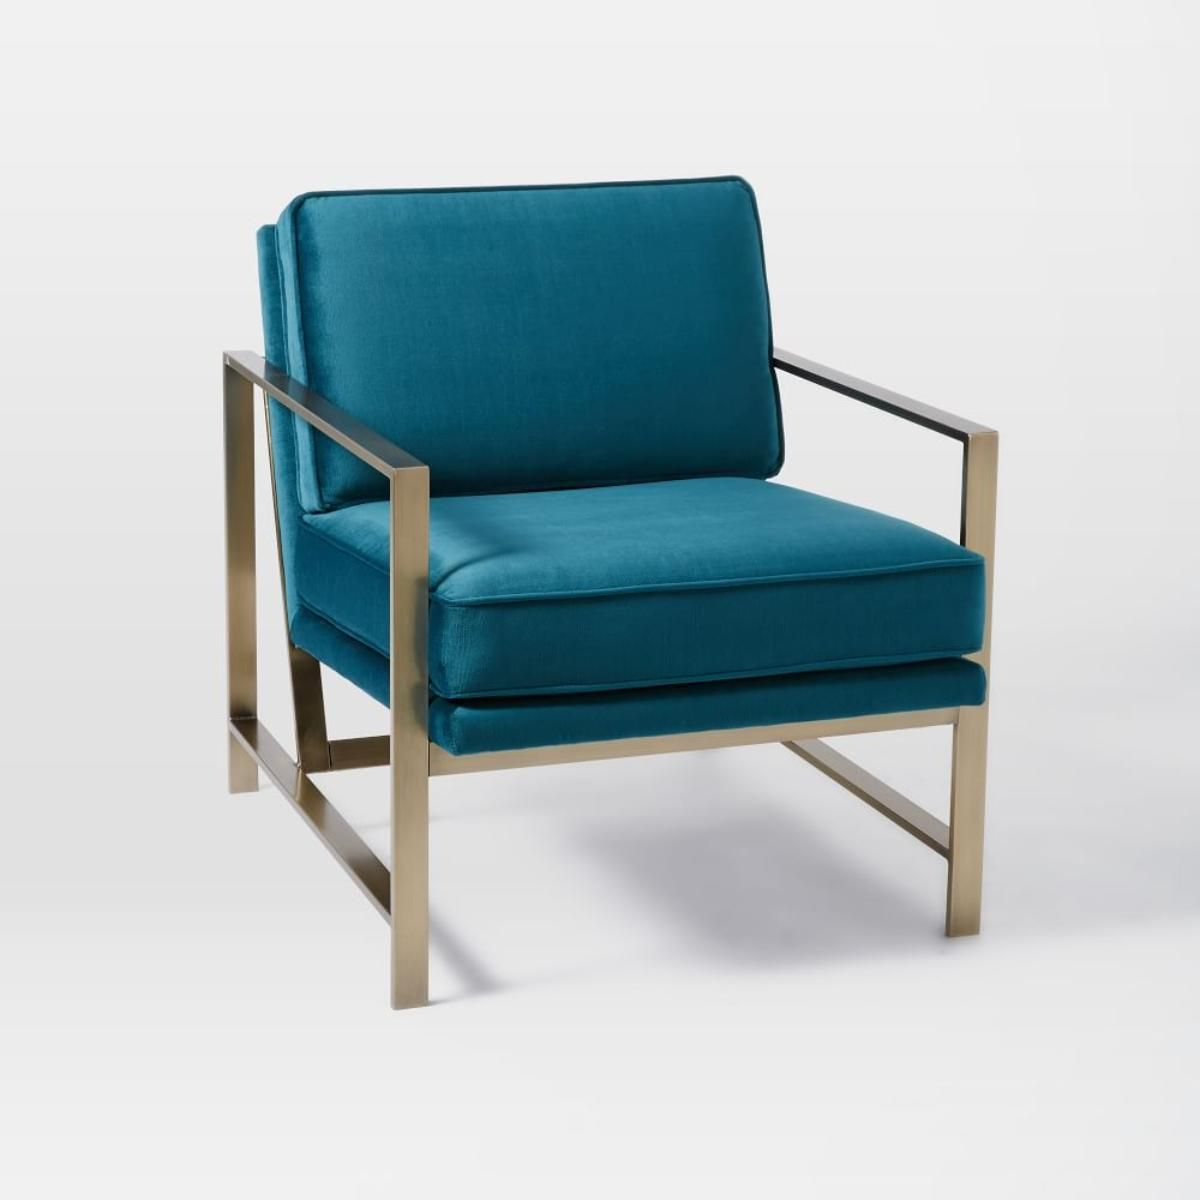 Metal Frame Upholstered Chair teal west elm  Upholstered chairs